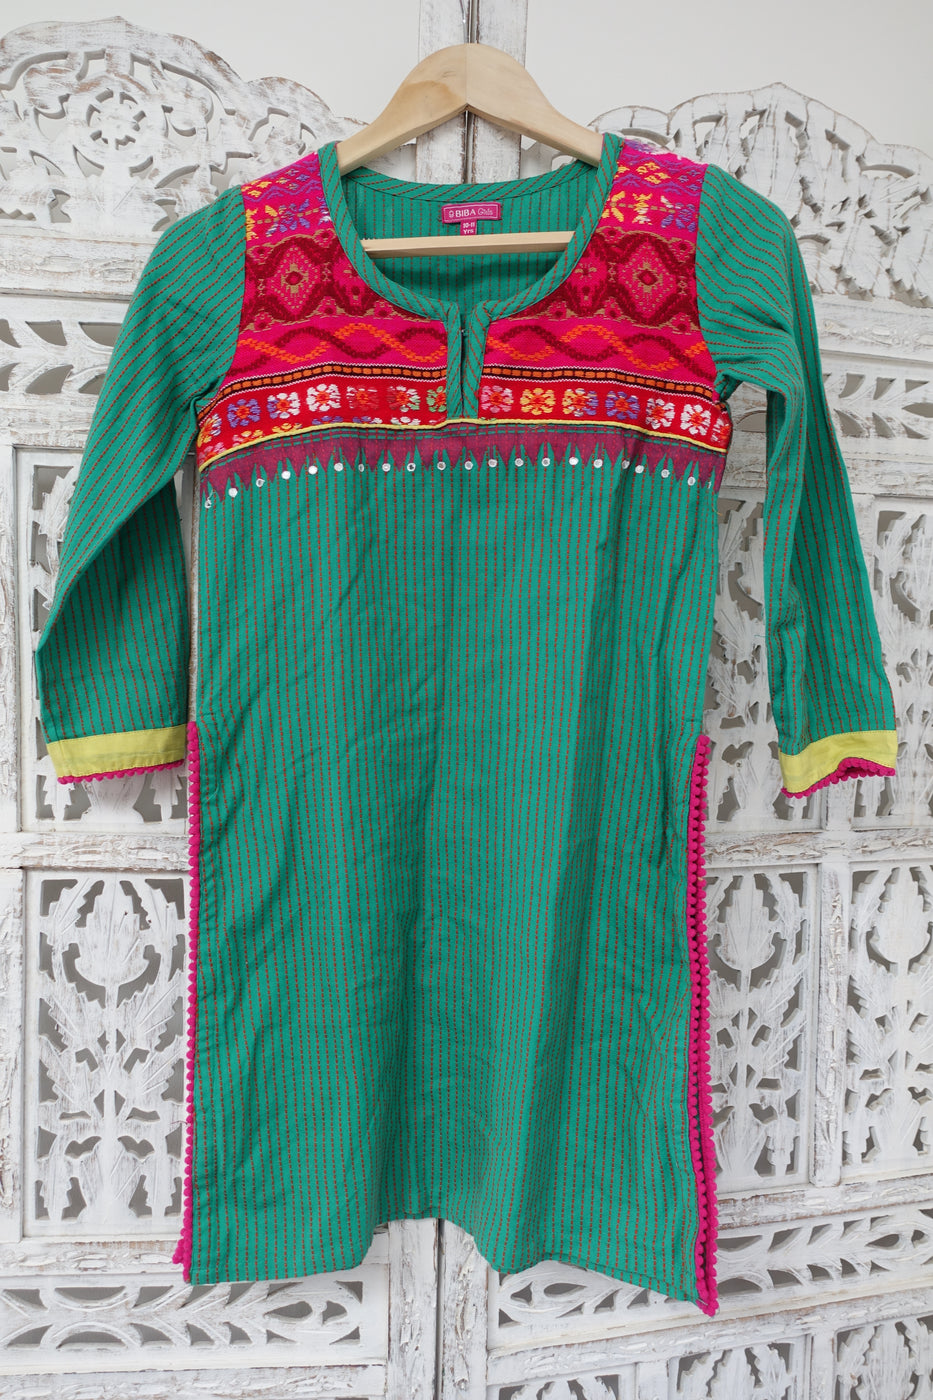 Green Biba Age 9-10 Dress - New - Indian Suit Company